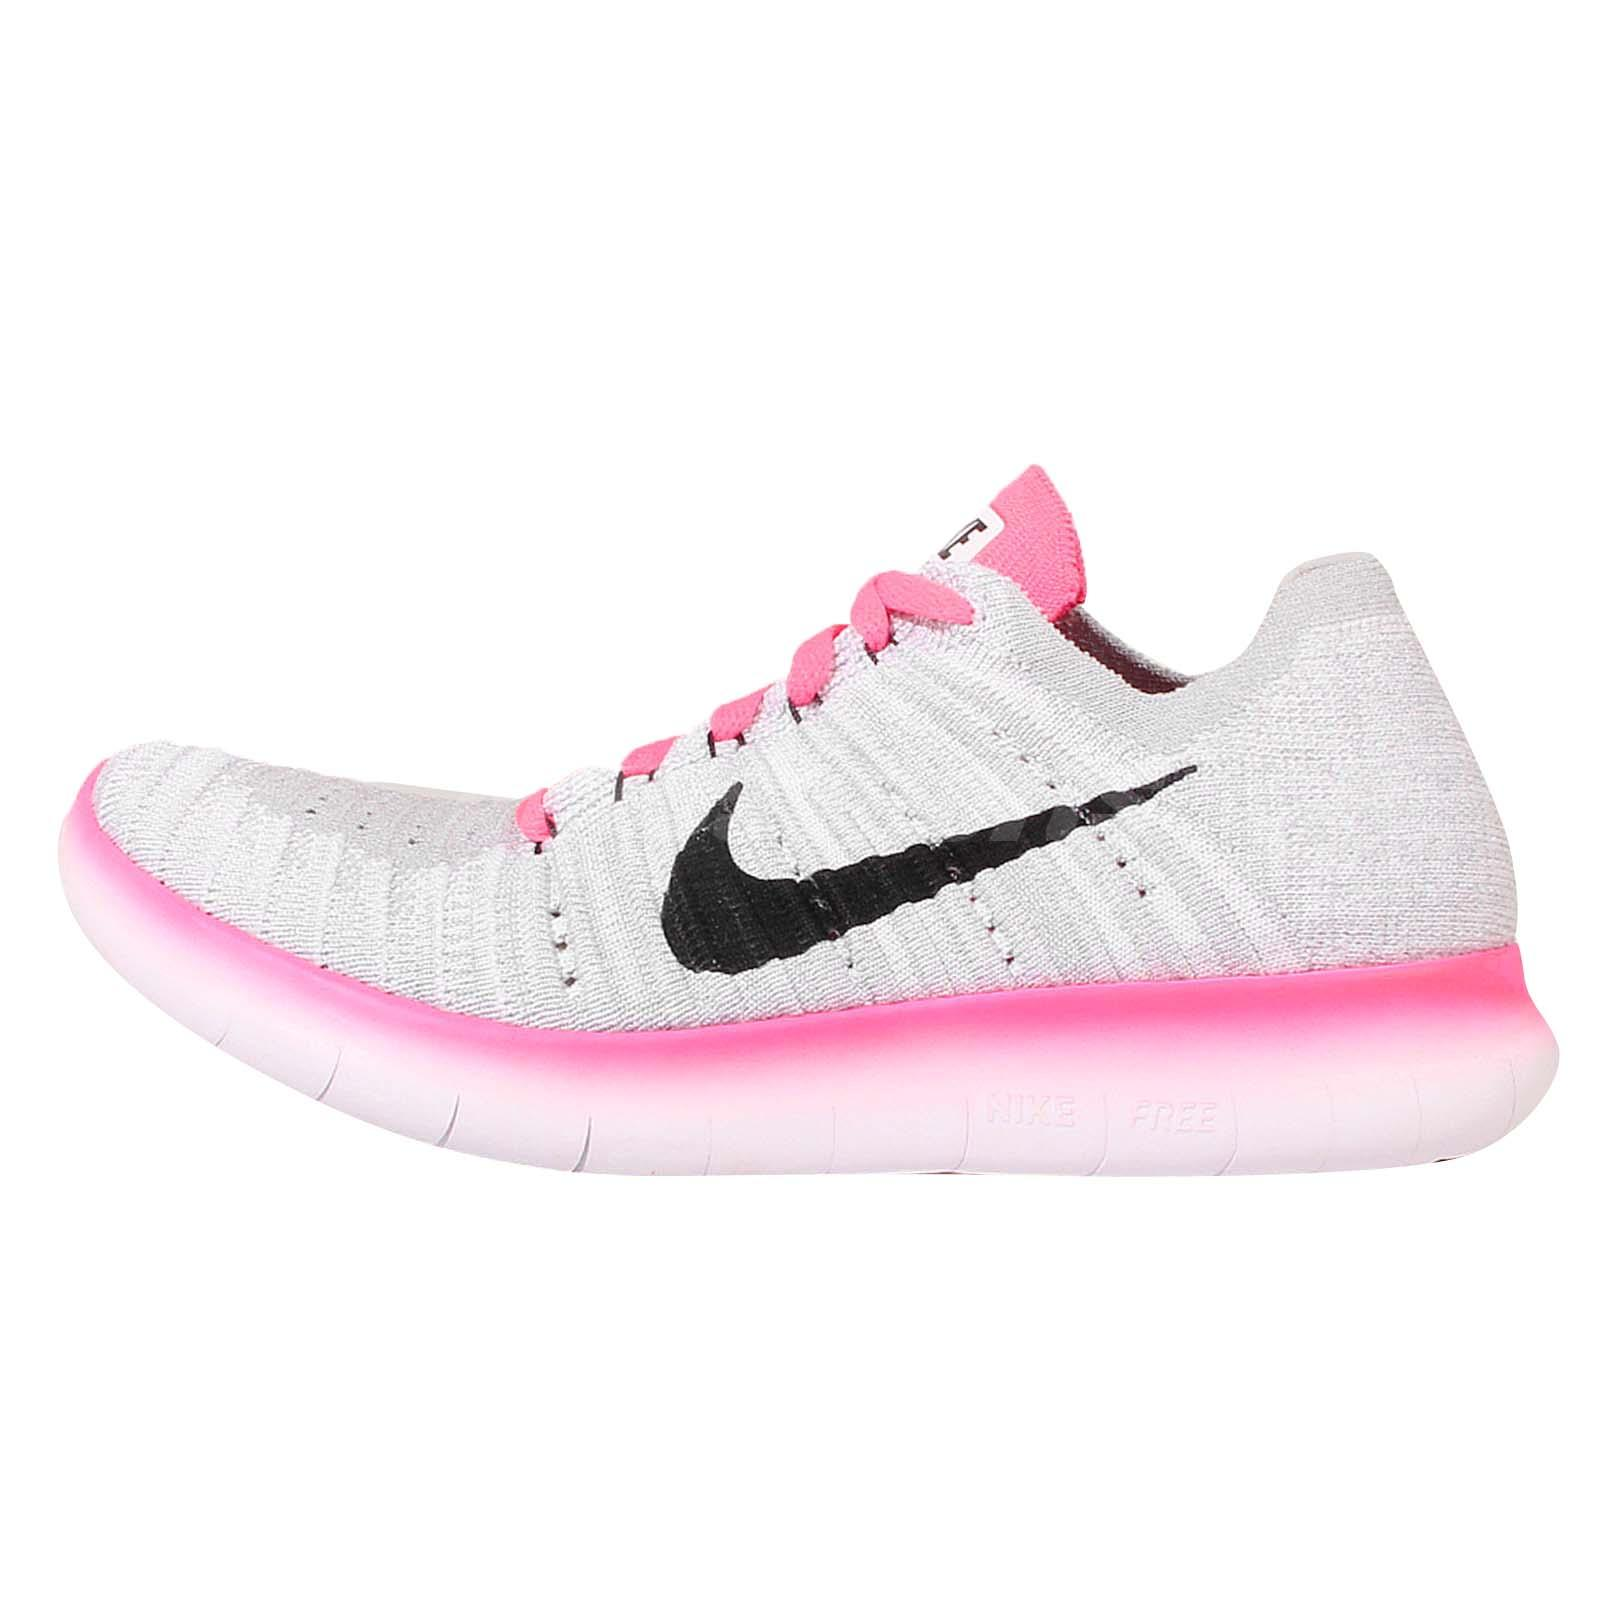 online store 9936a 78b79 ... 5.0 caracteristicas Nike Free RN Flyknit GS White Pink Run Youth Womens  Running Shoes 834363-106 ...